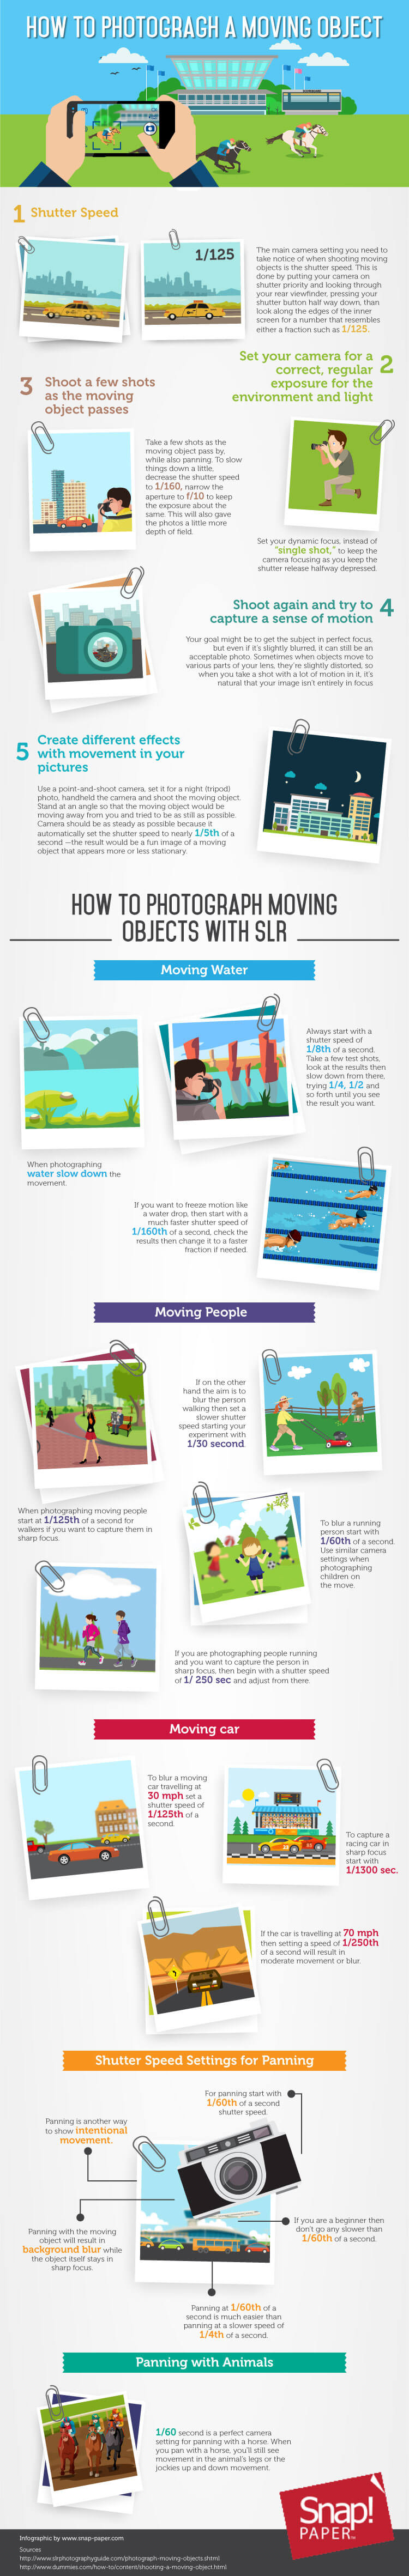 Infographic: How to photograph a moving object